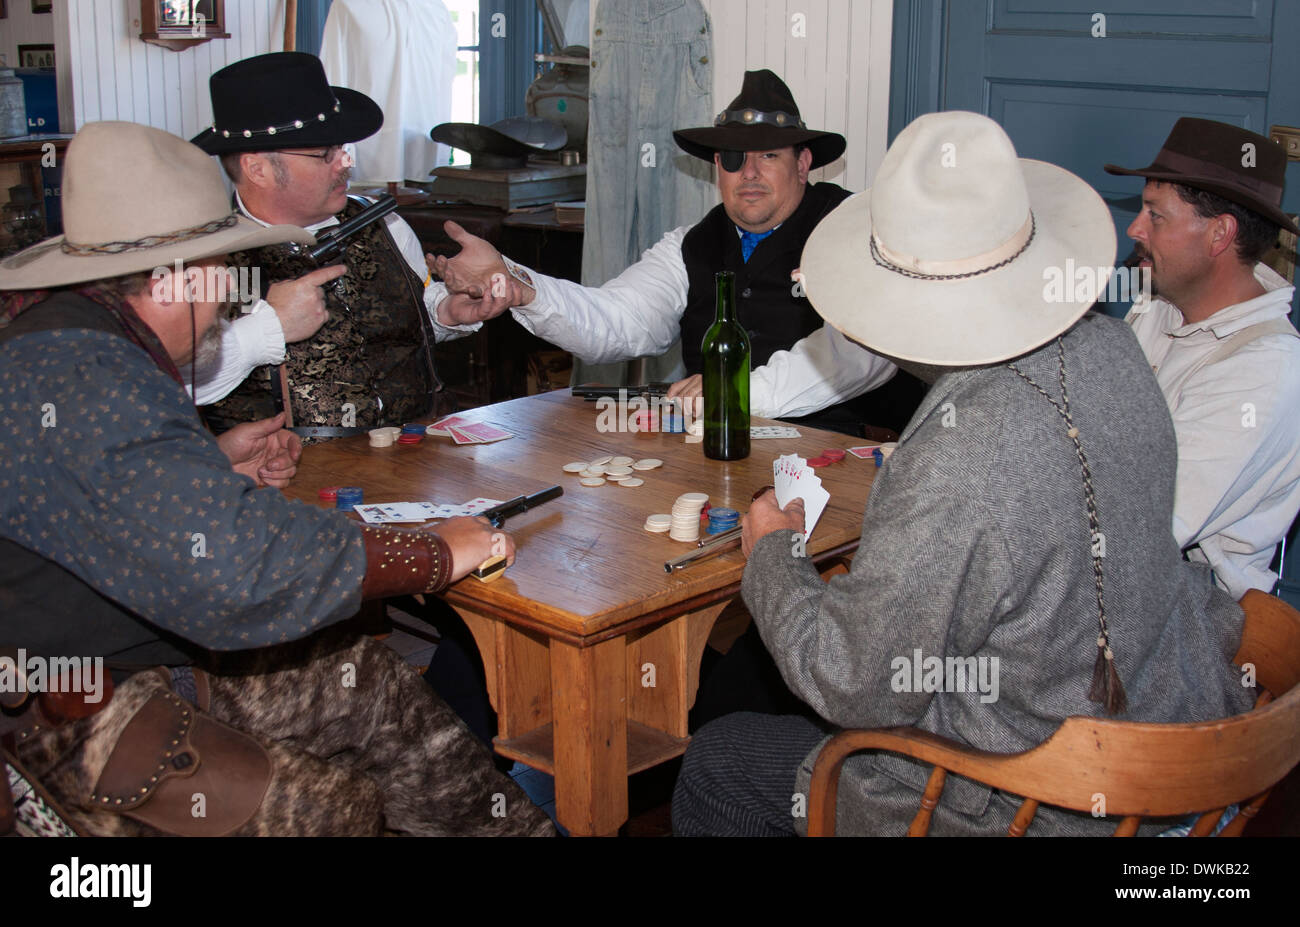 A cheater found in an old west poker game - Stock Image